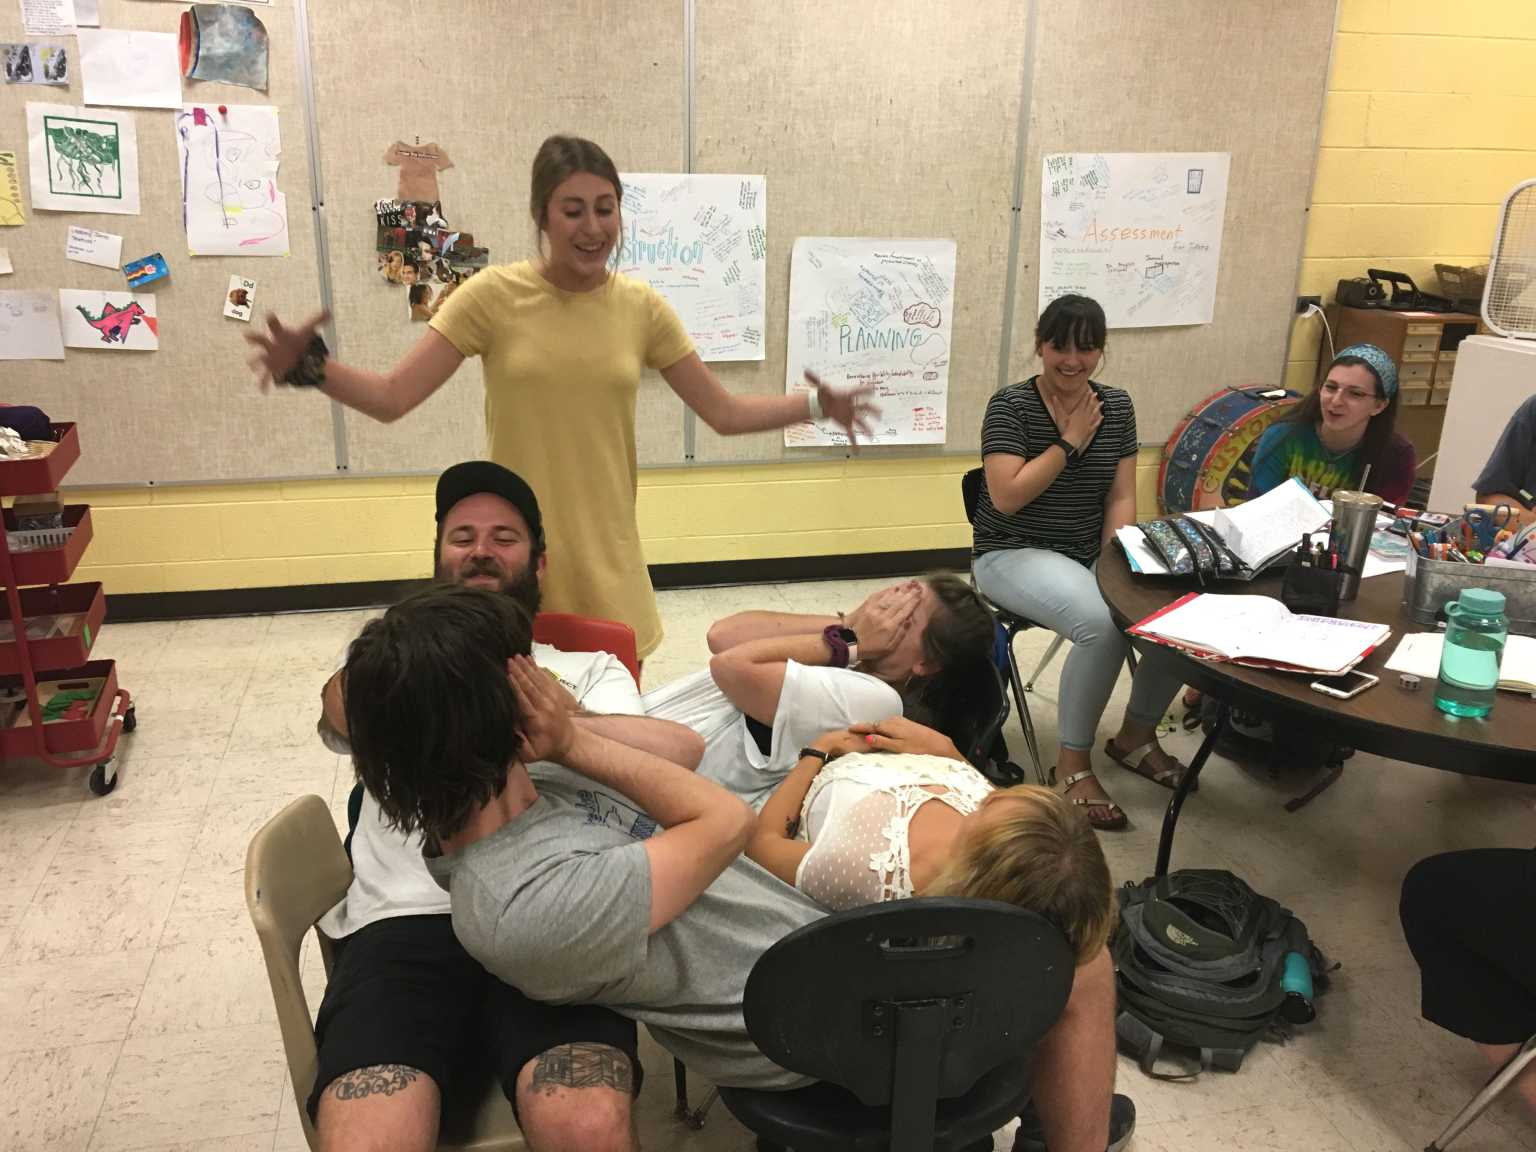 """Intro Art Ed. students listening and participating in teamwork activities during their """"Teach Anything"""" projects ."""